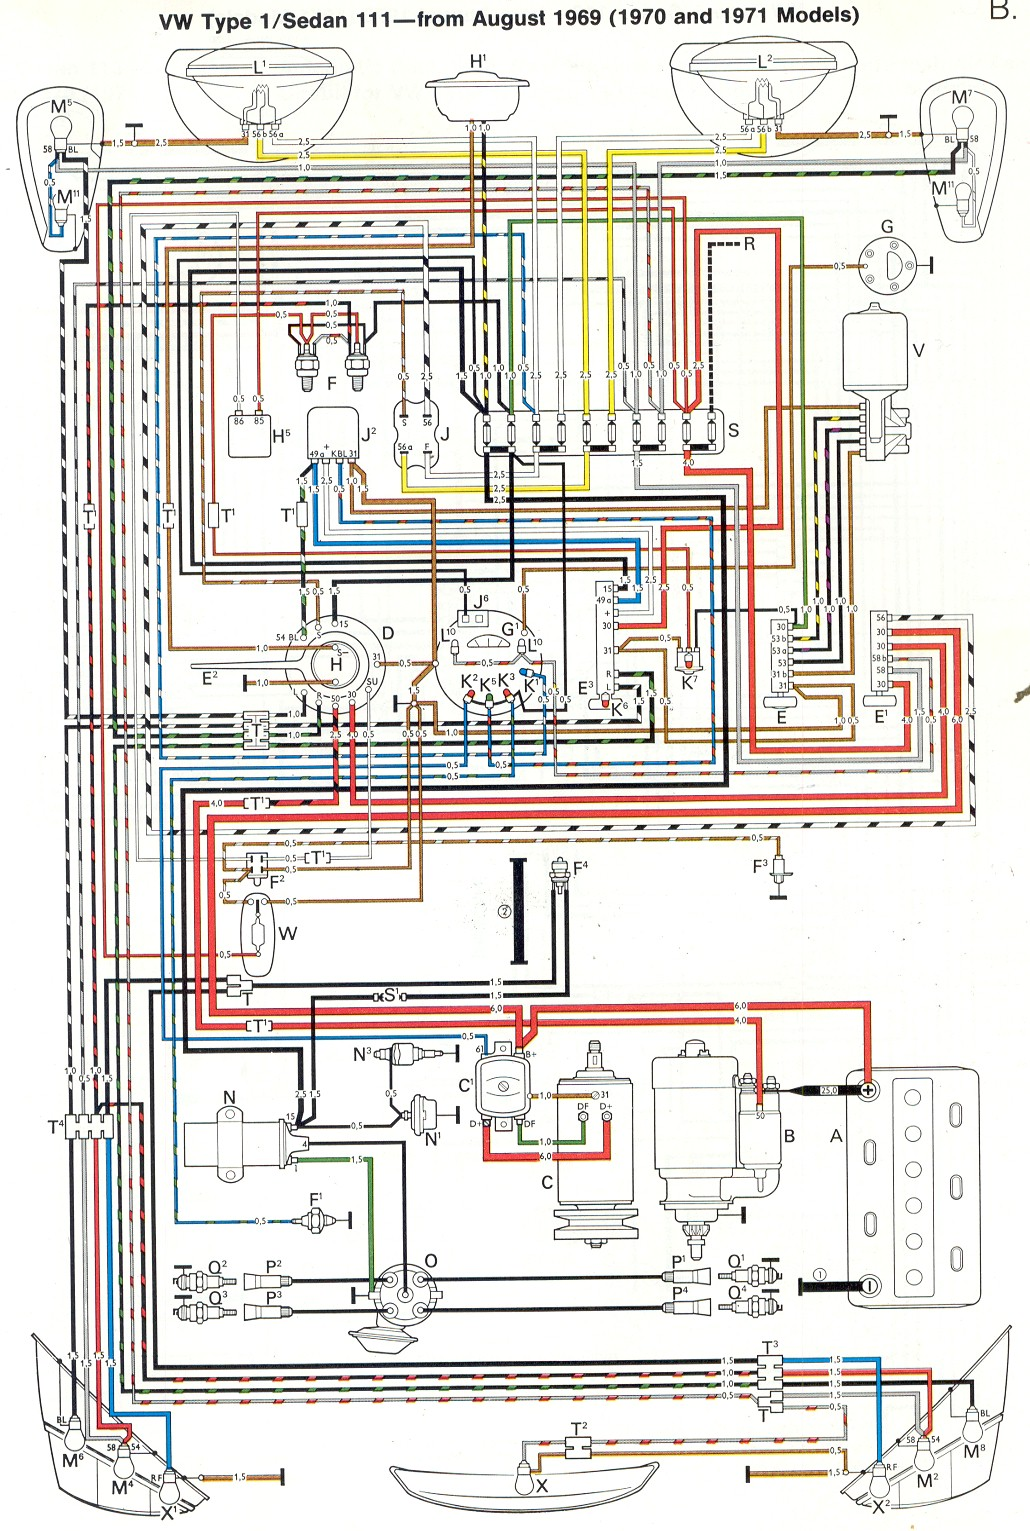 wiring diagram beetle 1973 wiring diagrams Series and Parallel Circuits Diagrams vw beetle wiring harness 2009 wiring diagram online